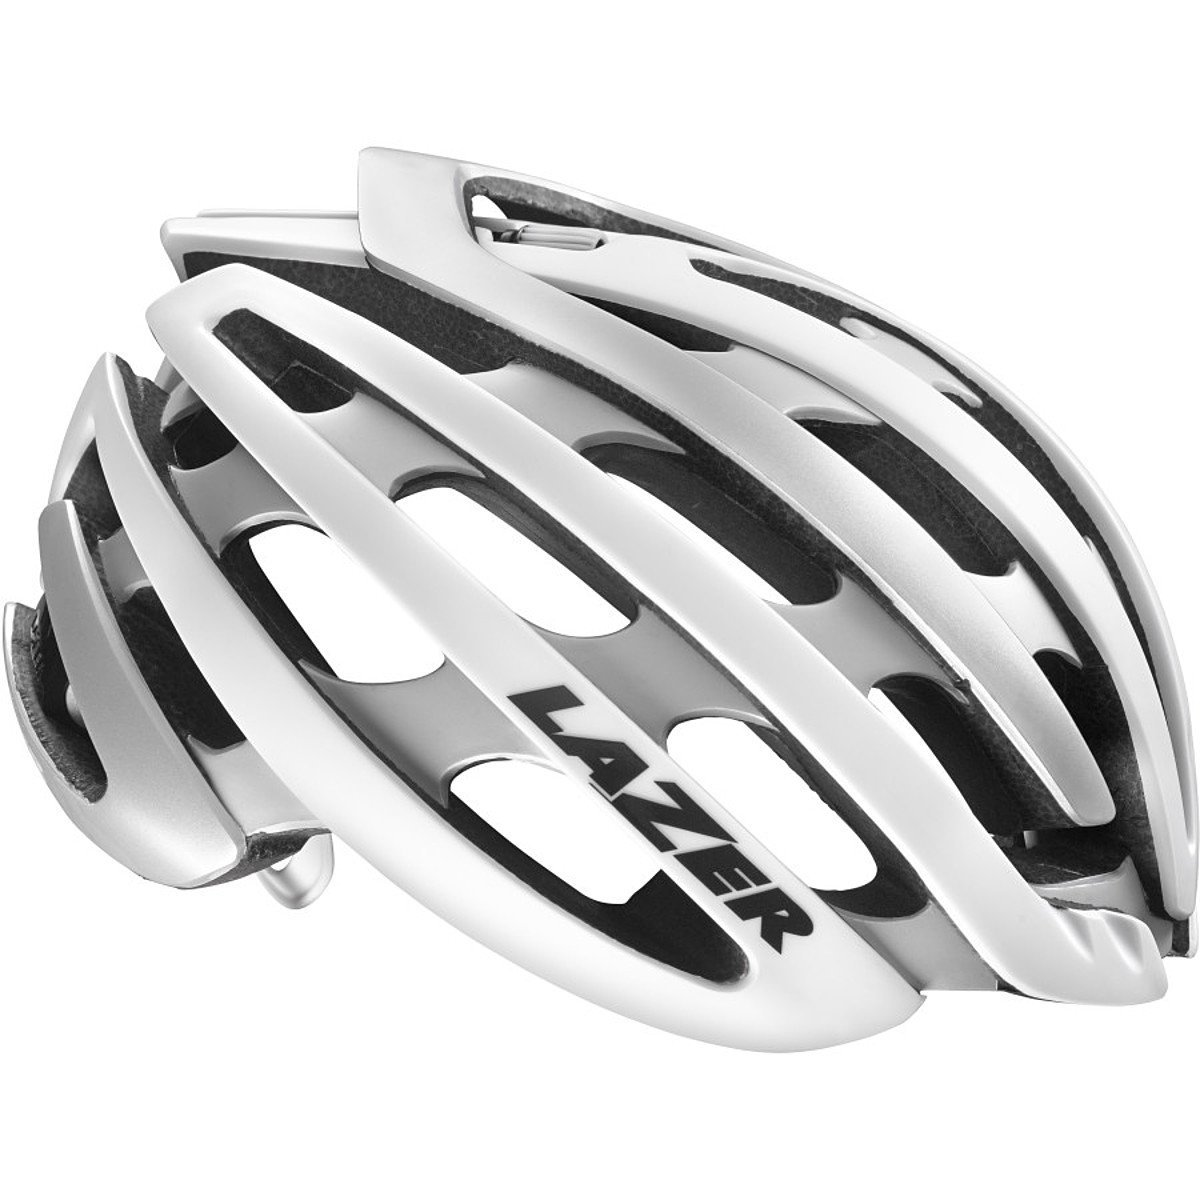 Silver Lazer Bicycle Helmets